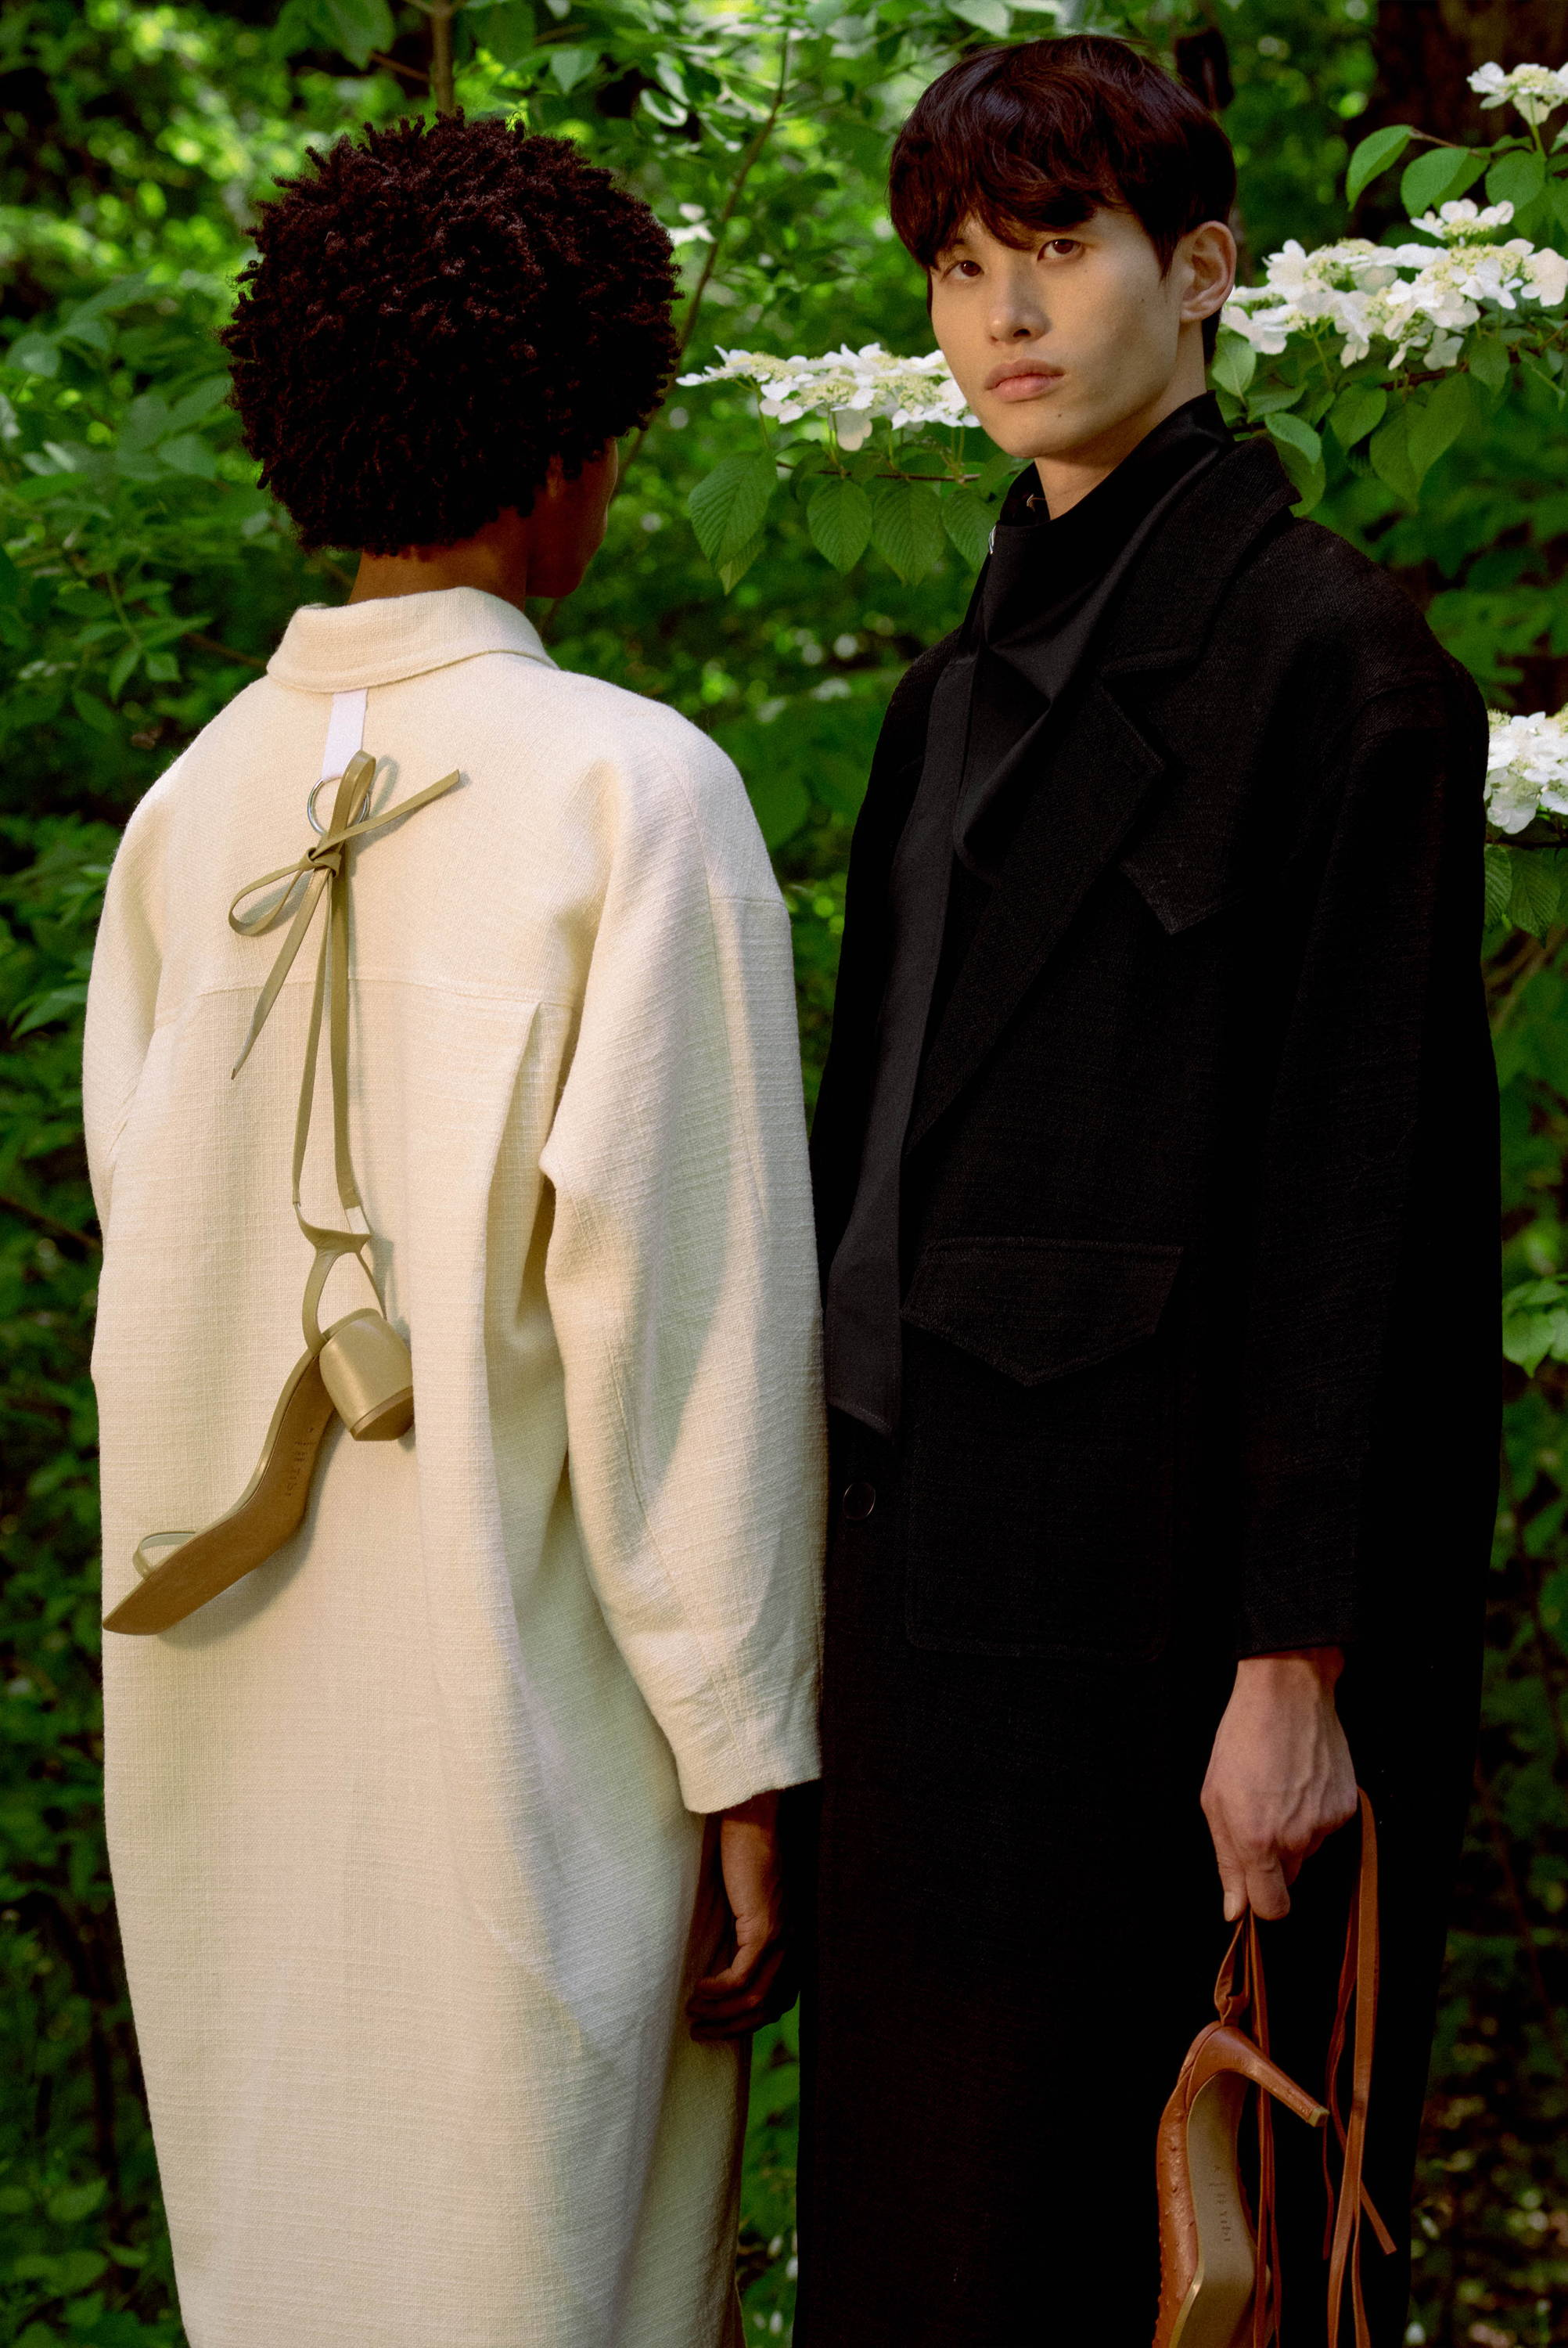 Male models wearing oversized coats. One model is facing away from camera with a shoe tied on his back.